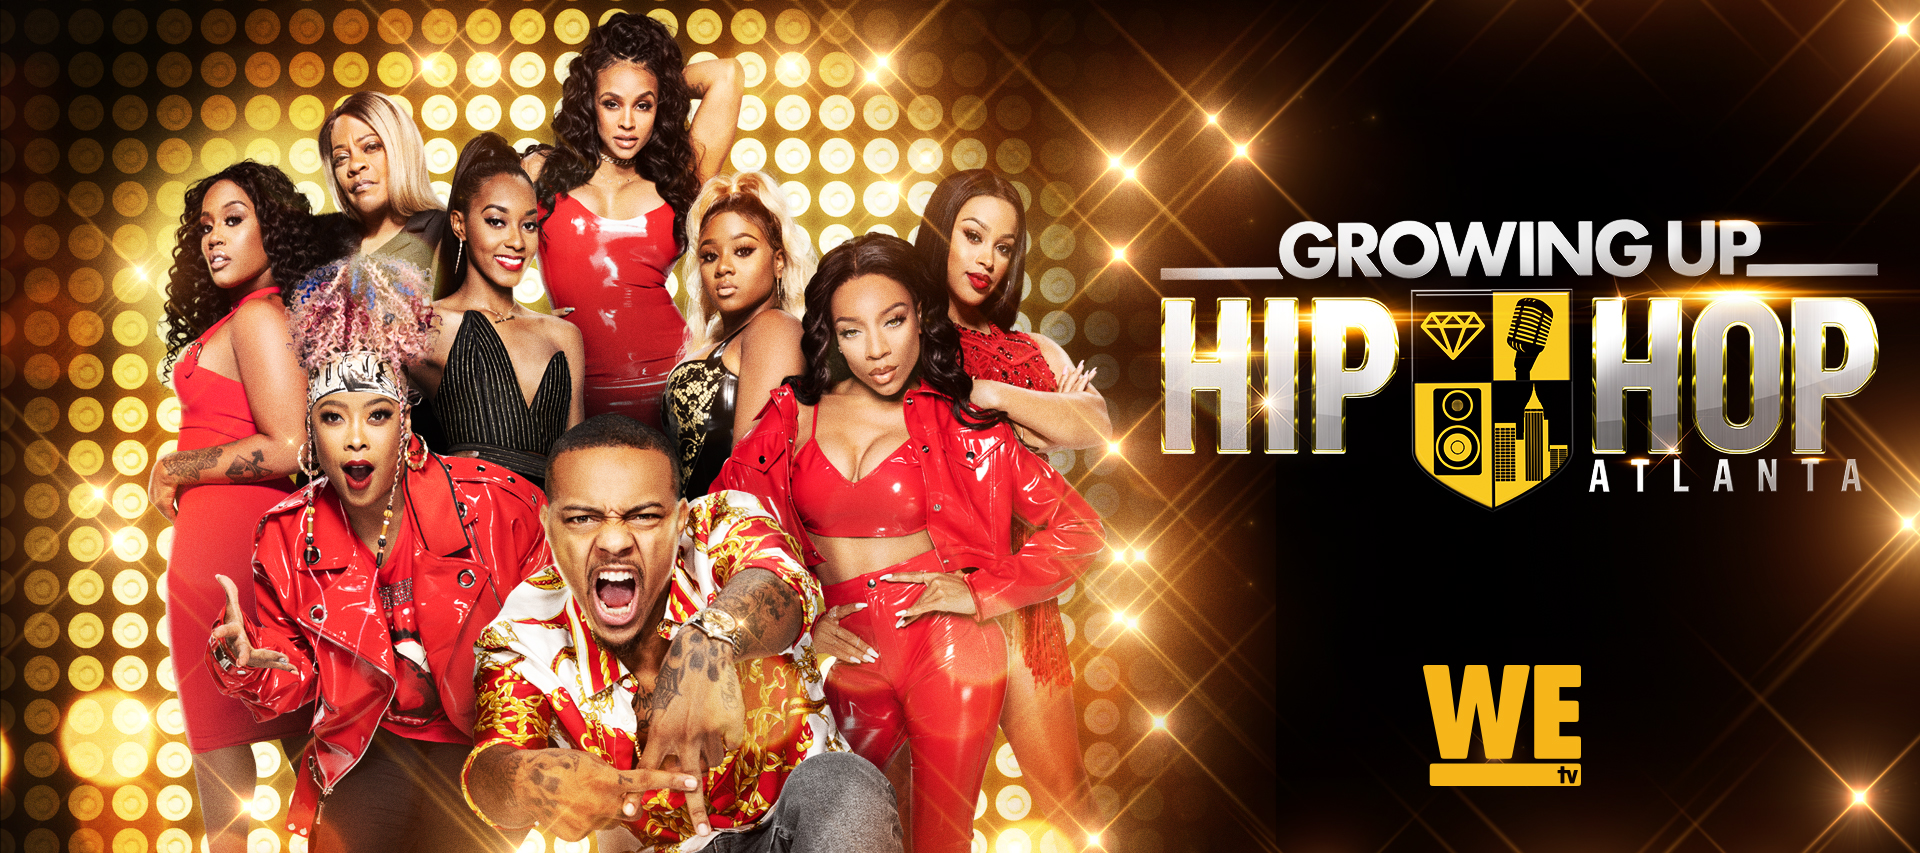 Catching Up With The Cast Of WE tv's Growing Up Hip Hop ...